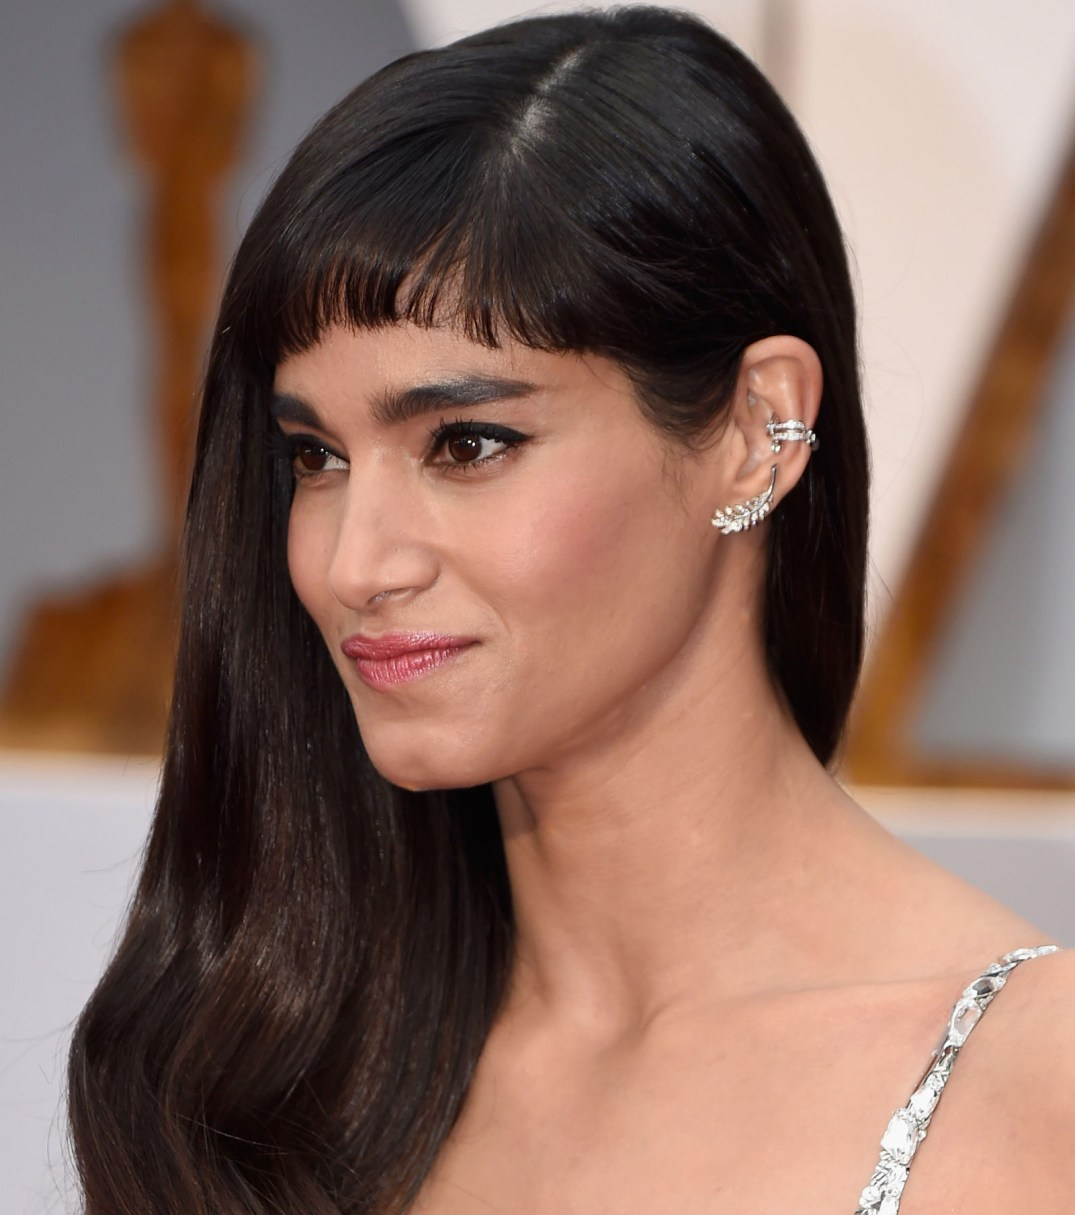 Sofia Boutella Looked Great In Diamond Ear Crawlers By Chanel Fine Jewelry. PC- Harper's Bazaar